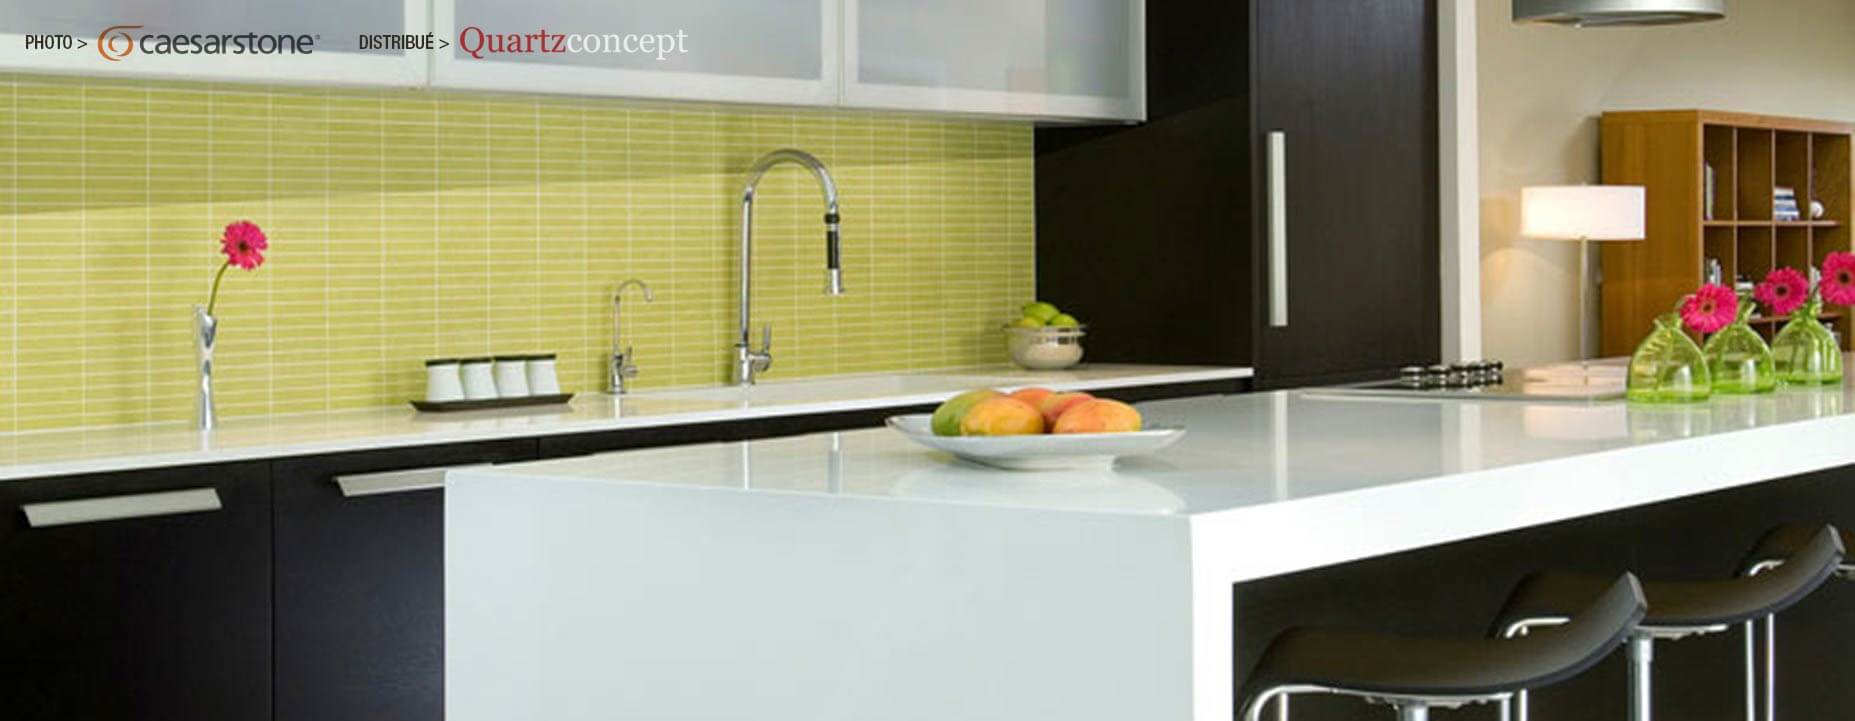 Quartz Caesarstone couleur 2141 blizzard